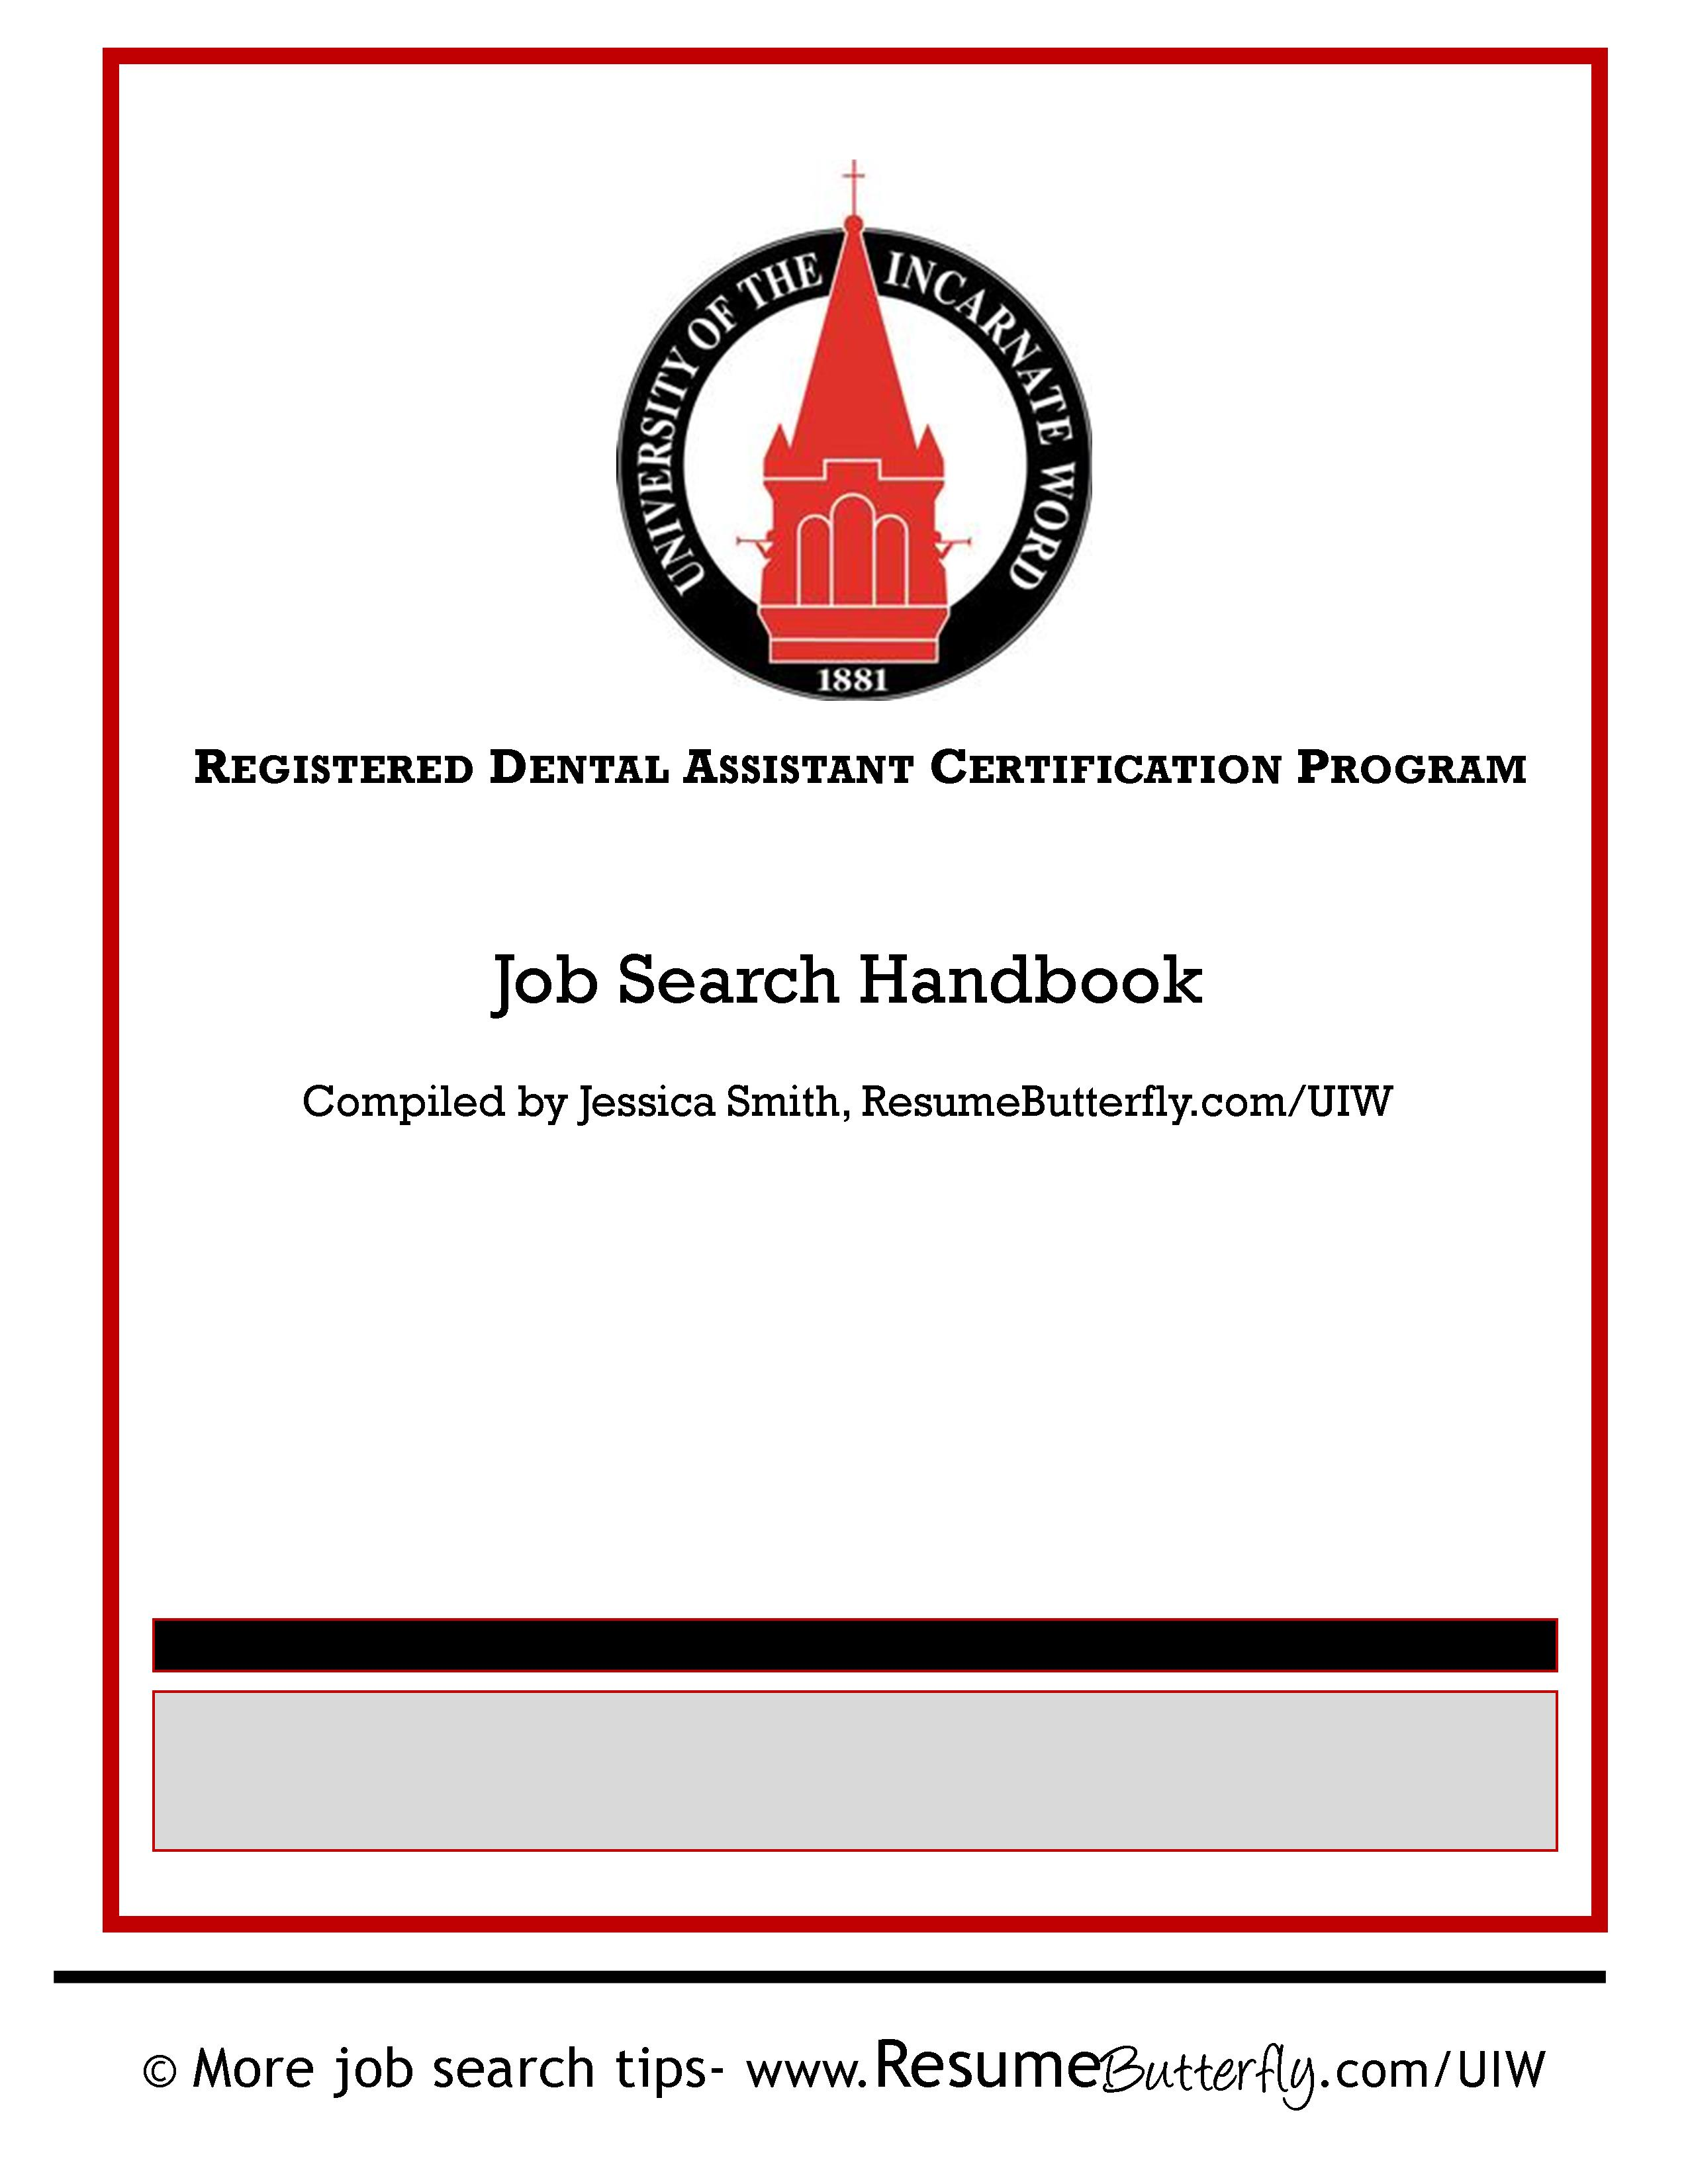 UIW cover - Dental Assistant Job Search Handbook - Resume Butterfly ...